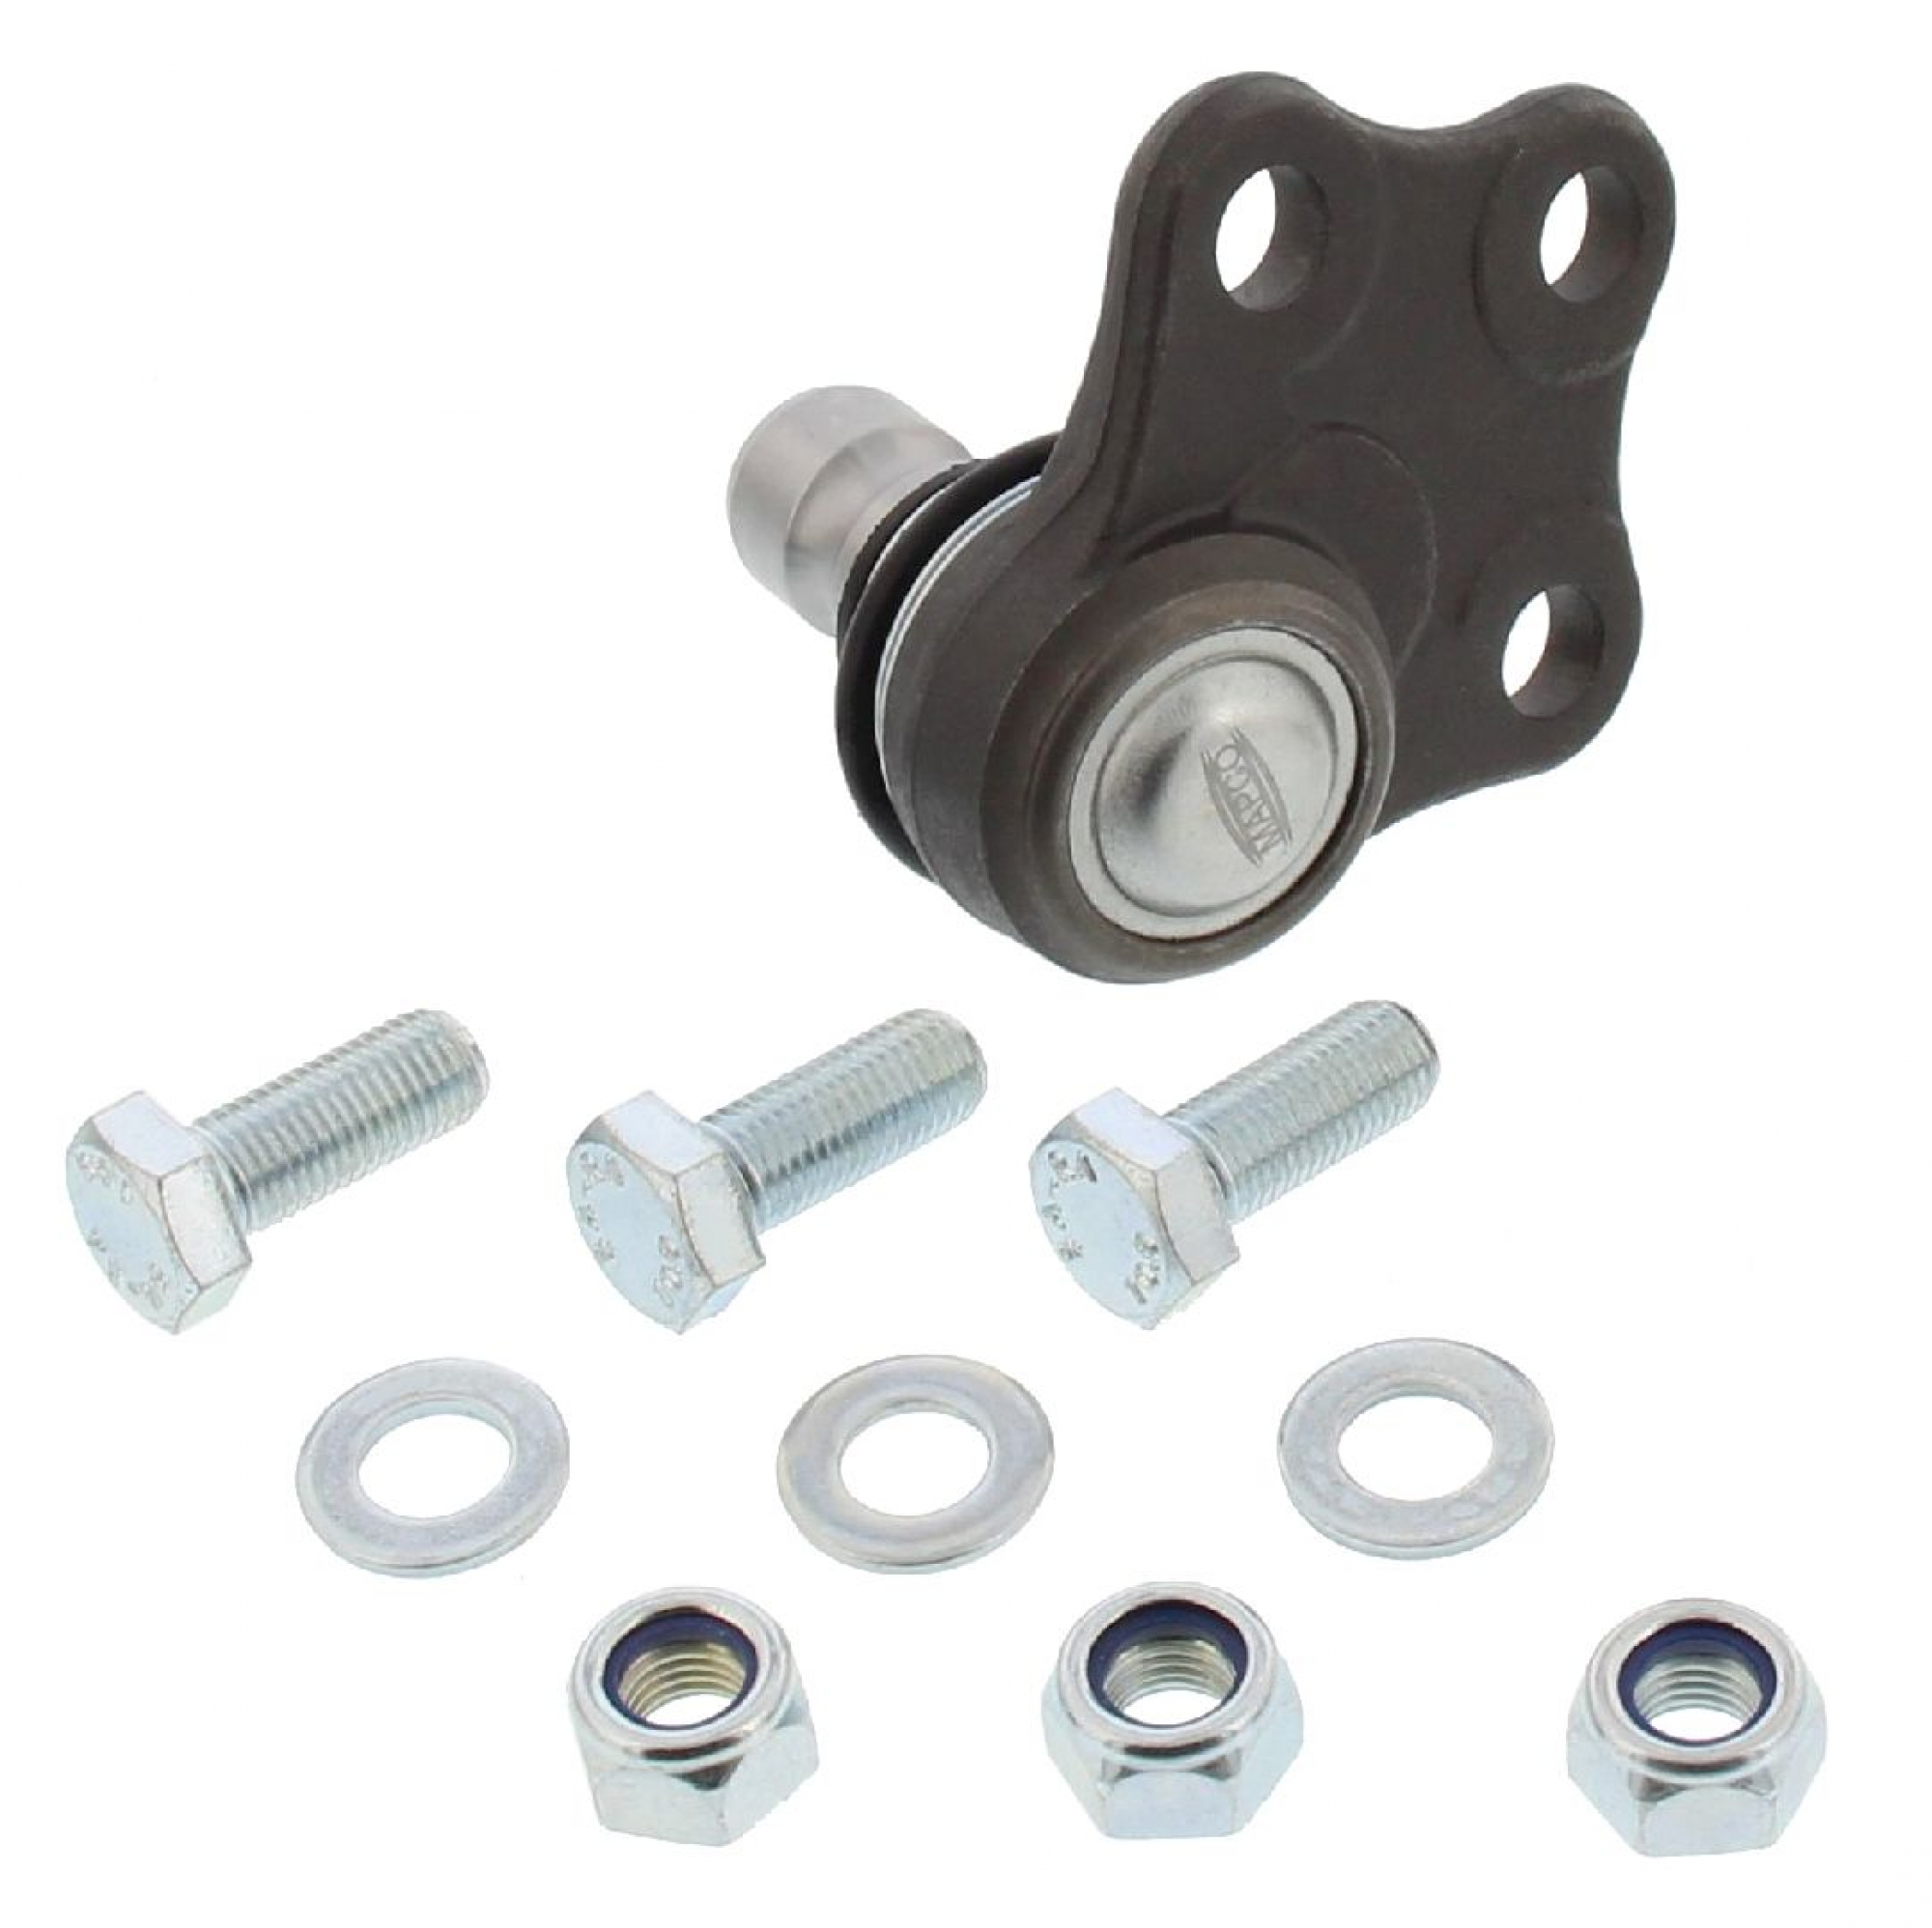 MAPCO 59175 ball joint